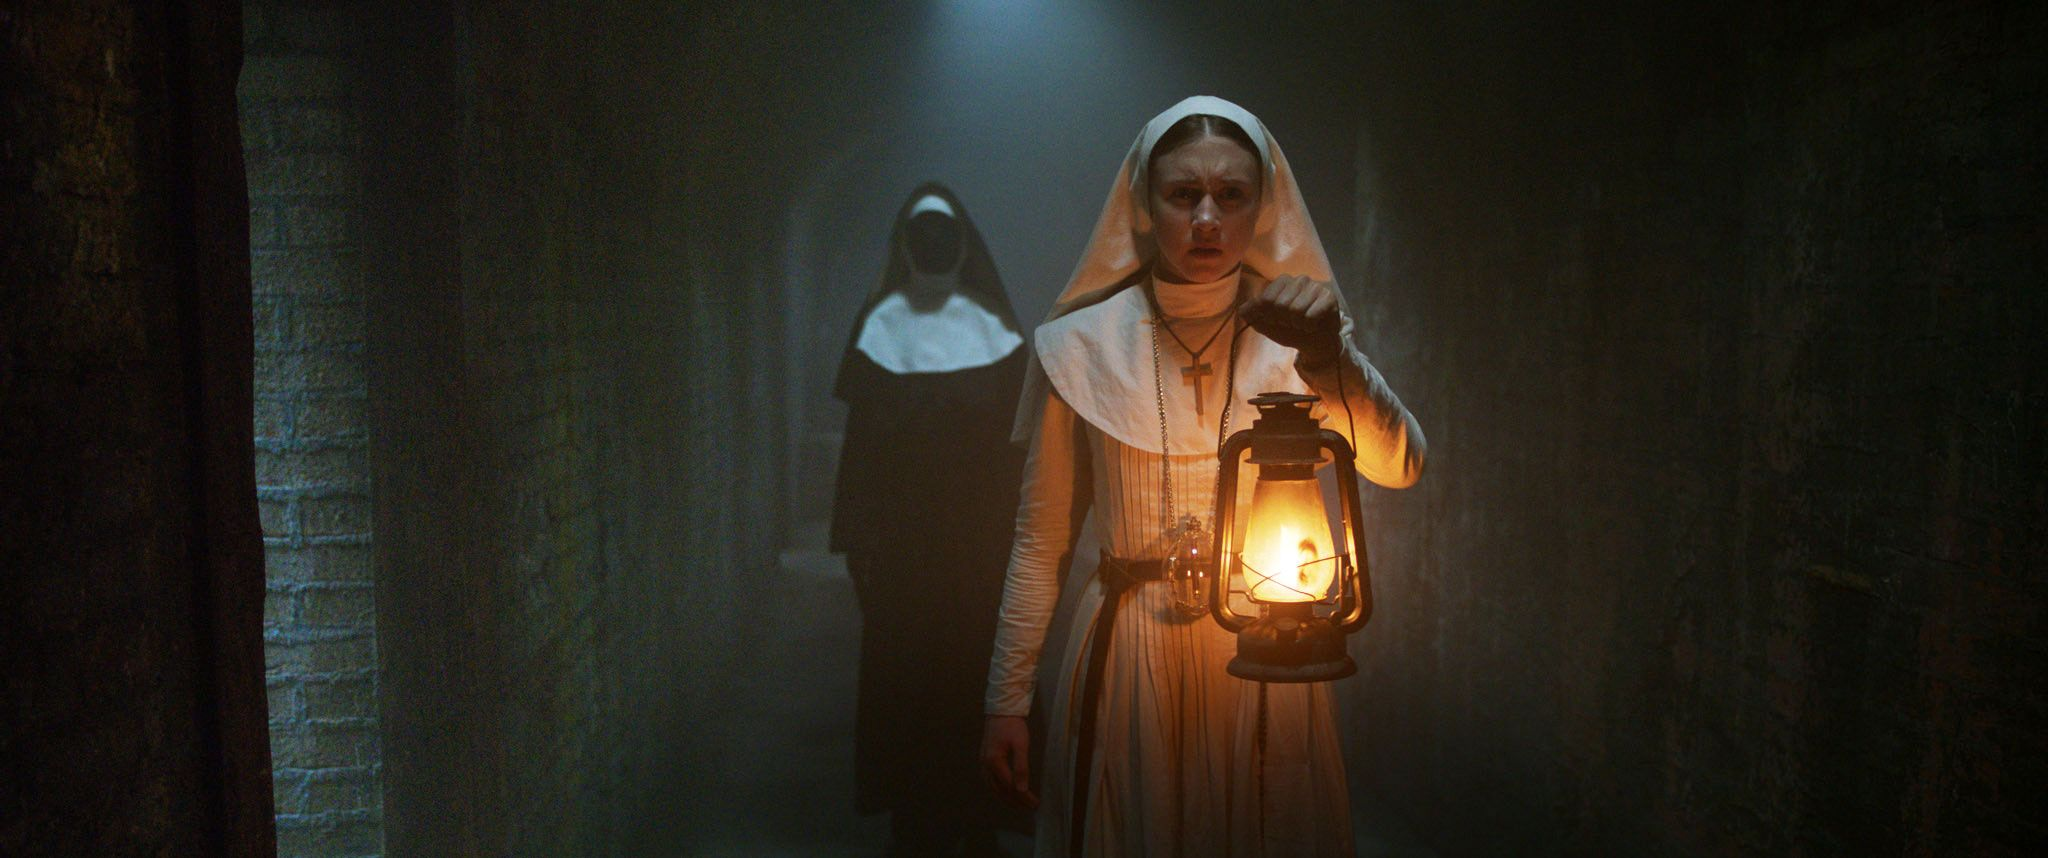 The Nun Ending Explained How The Nun Fits Into The Conjuring Universe